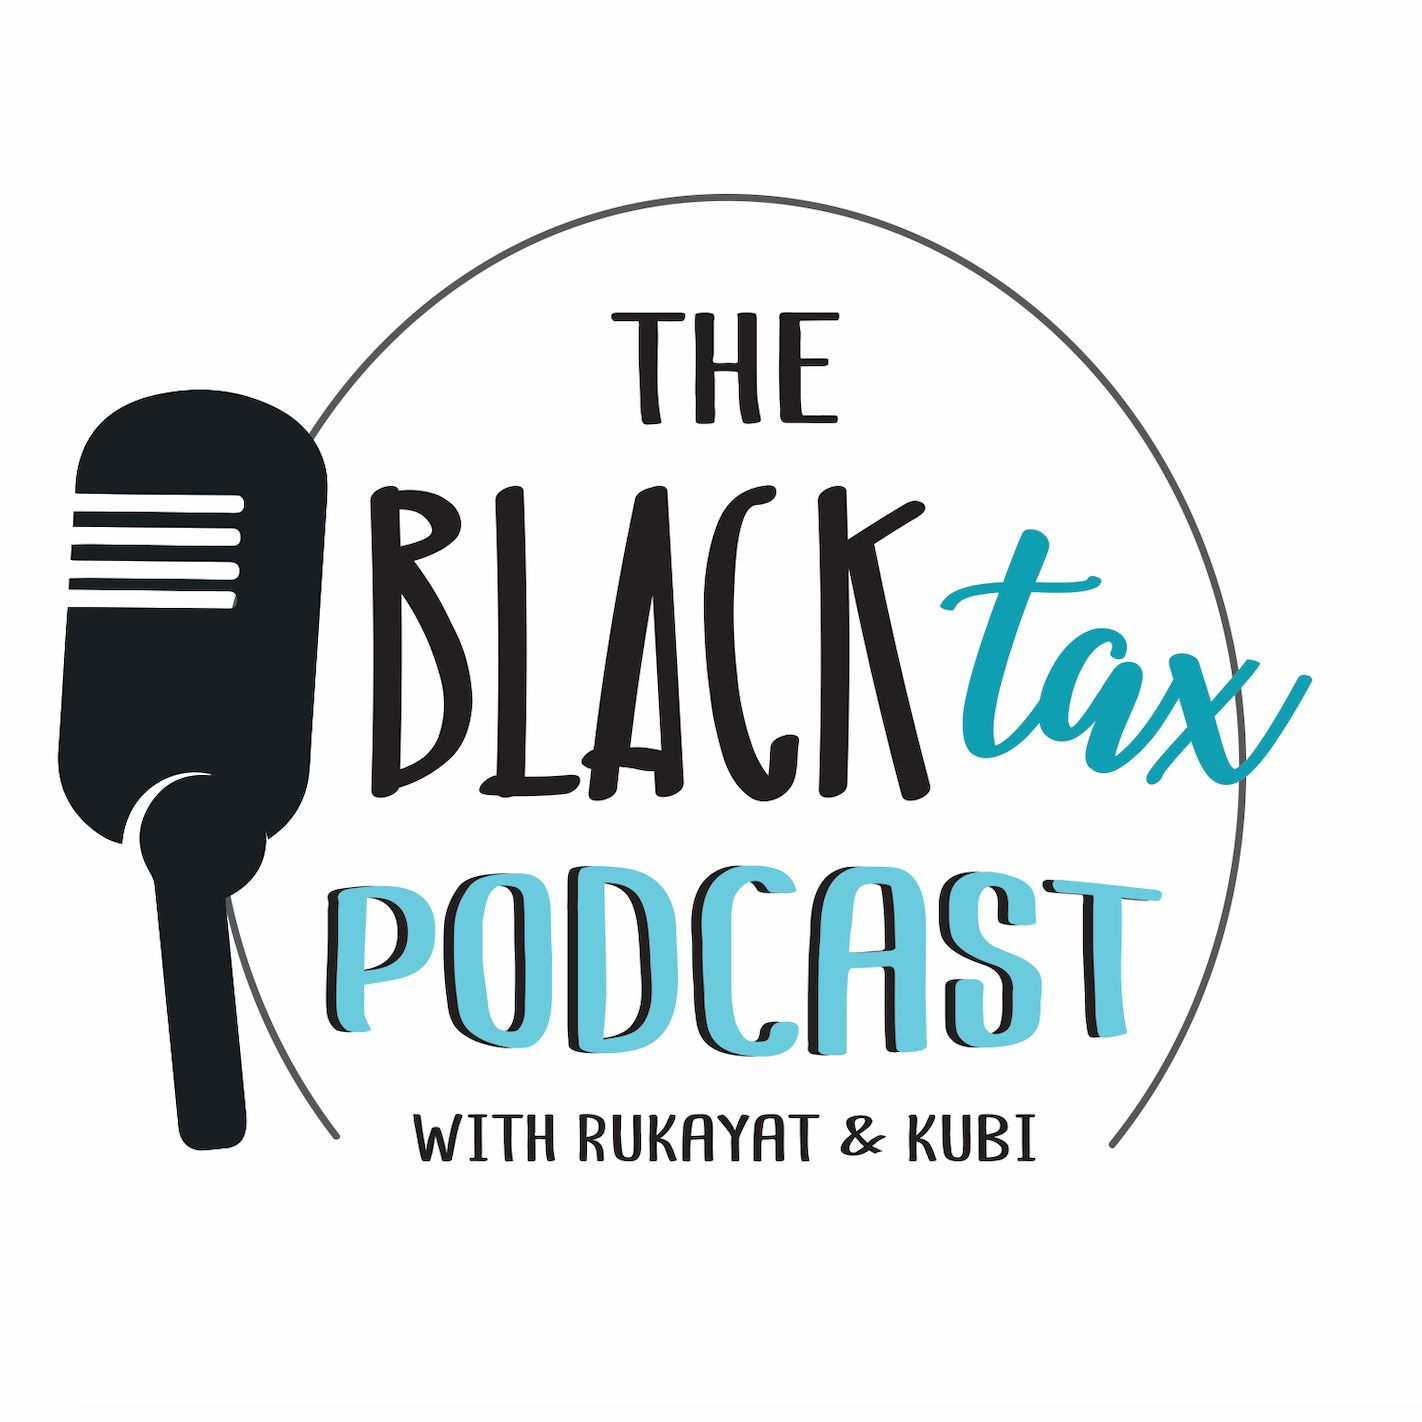 The Black Tax Podcast on Apple Podcasts